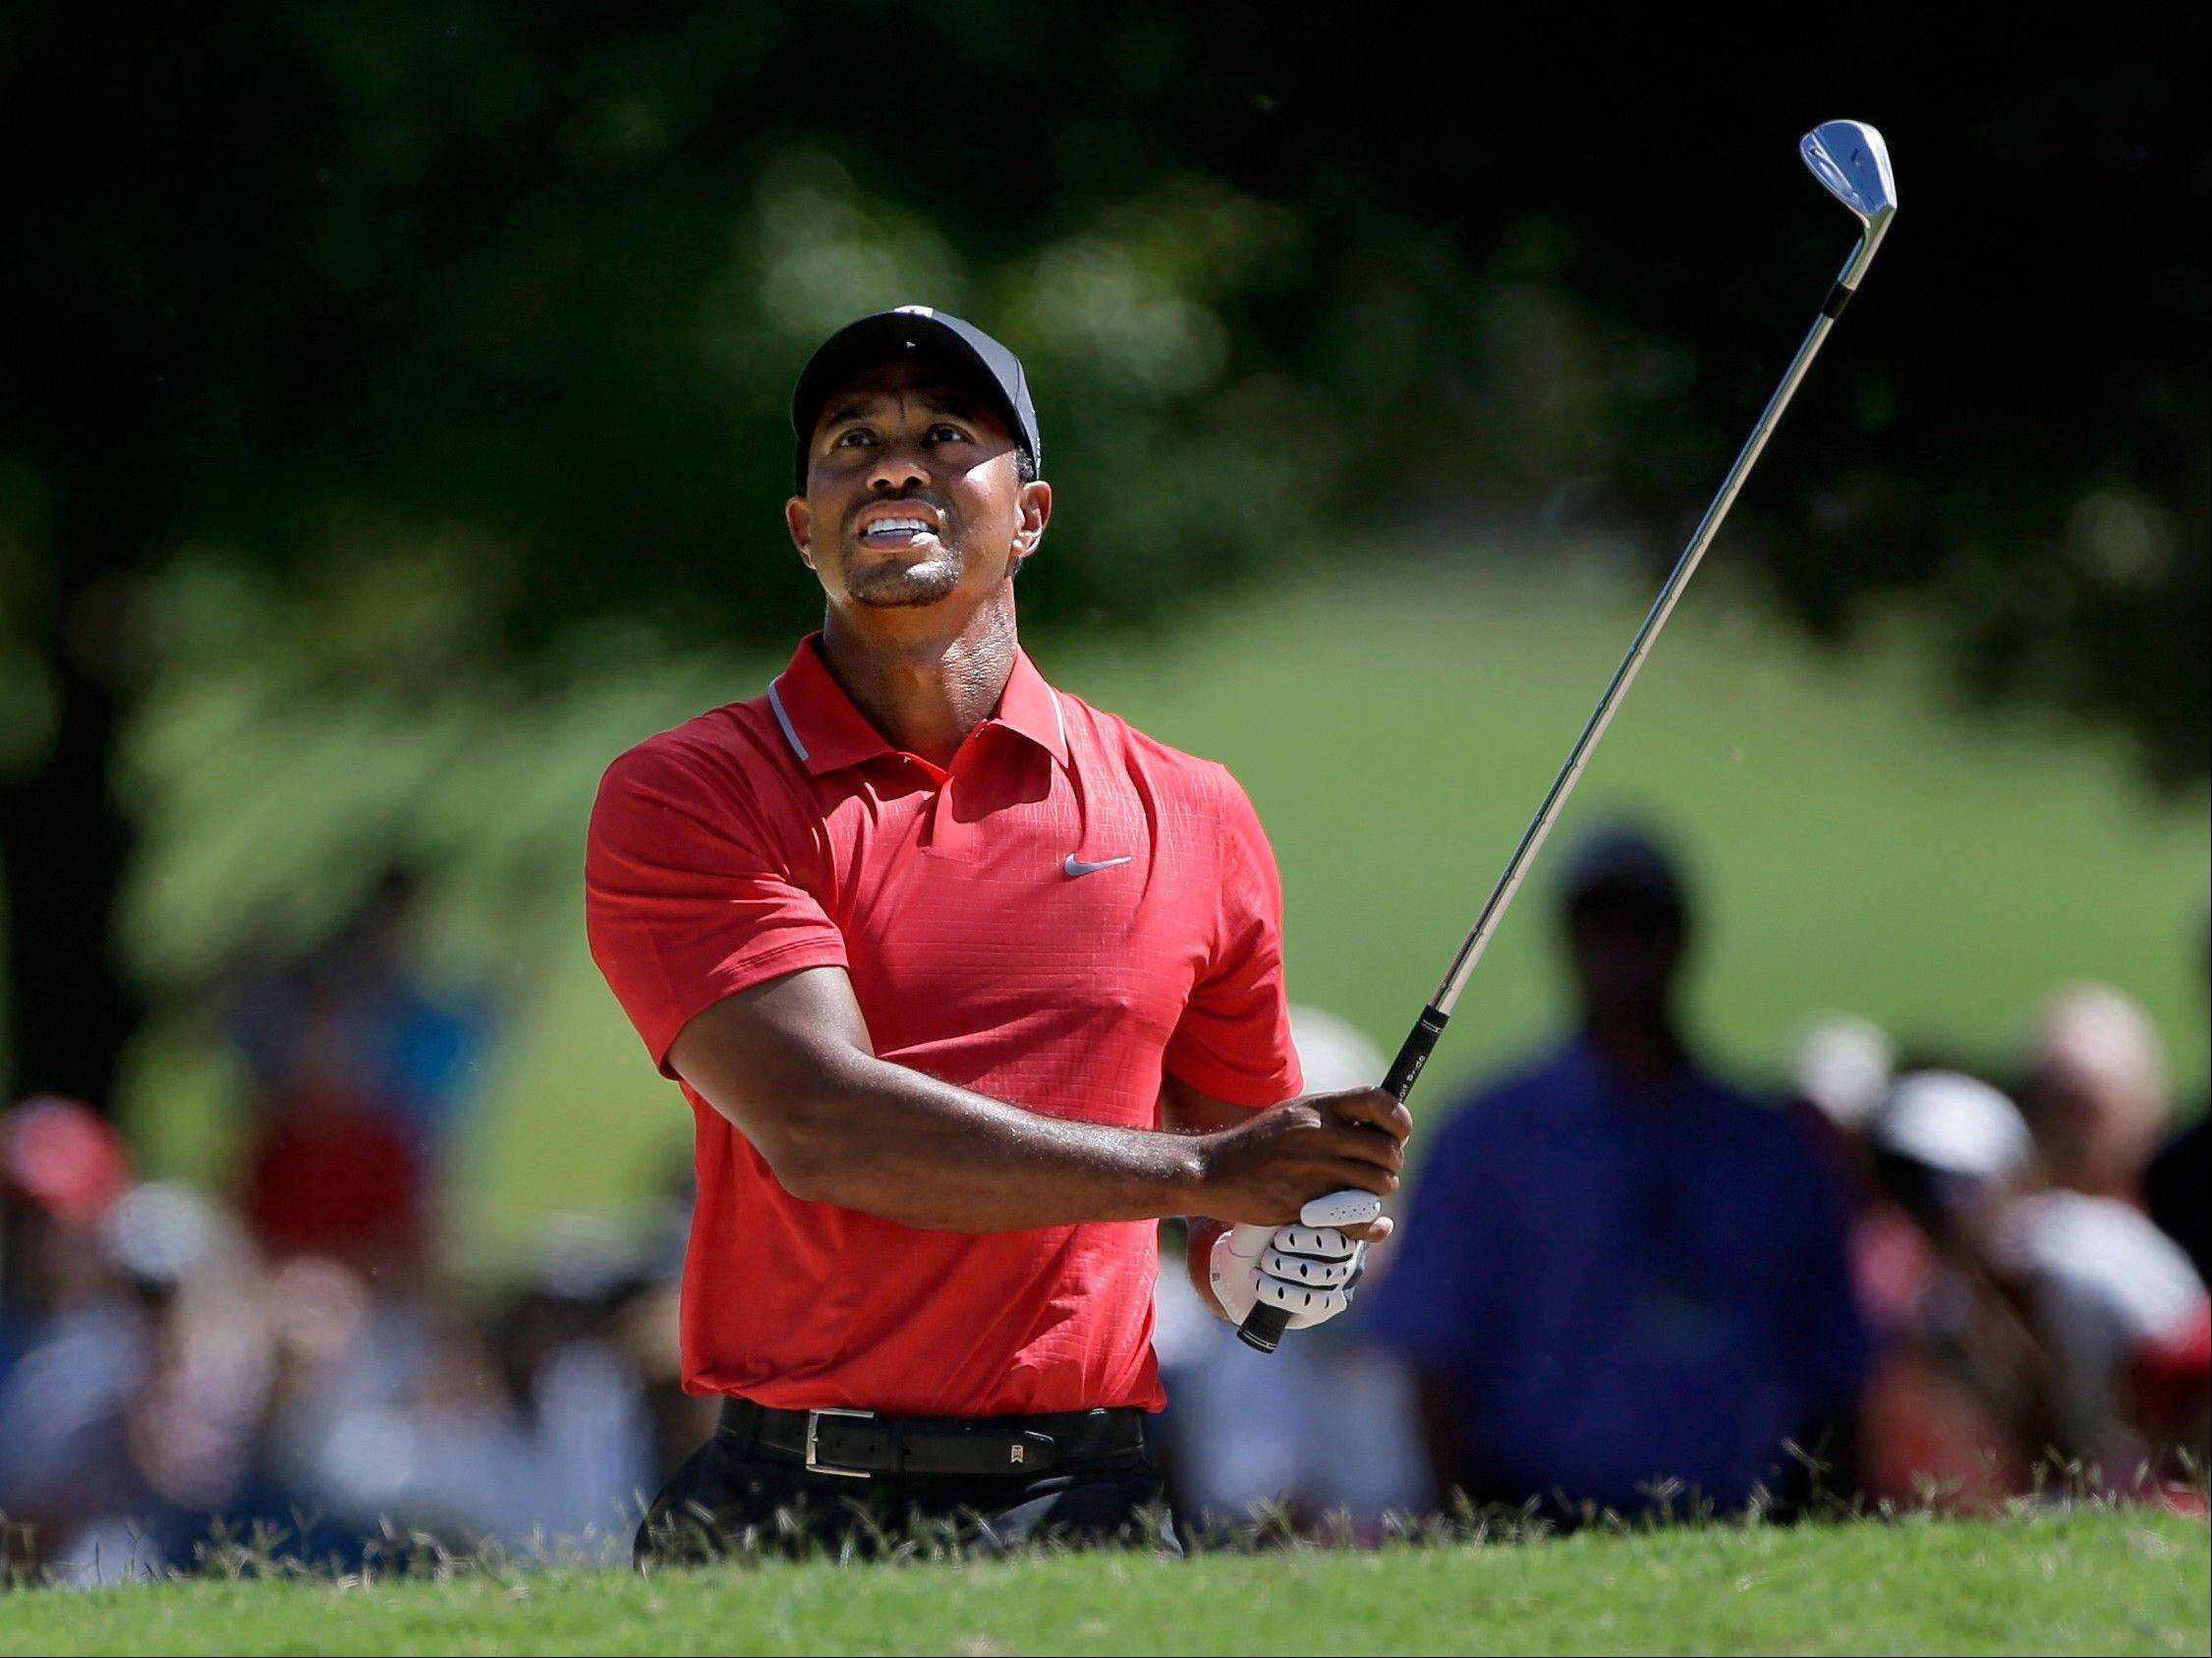 Tiger Woods hits out of the bunker on the third hole during the final round of play in the Tour Championship golf tournament Sunday at East Lake Golf Club in Atlanta.